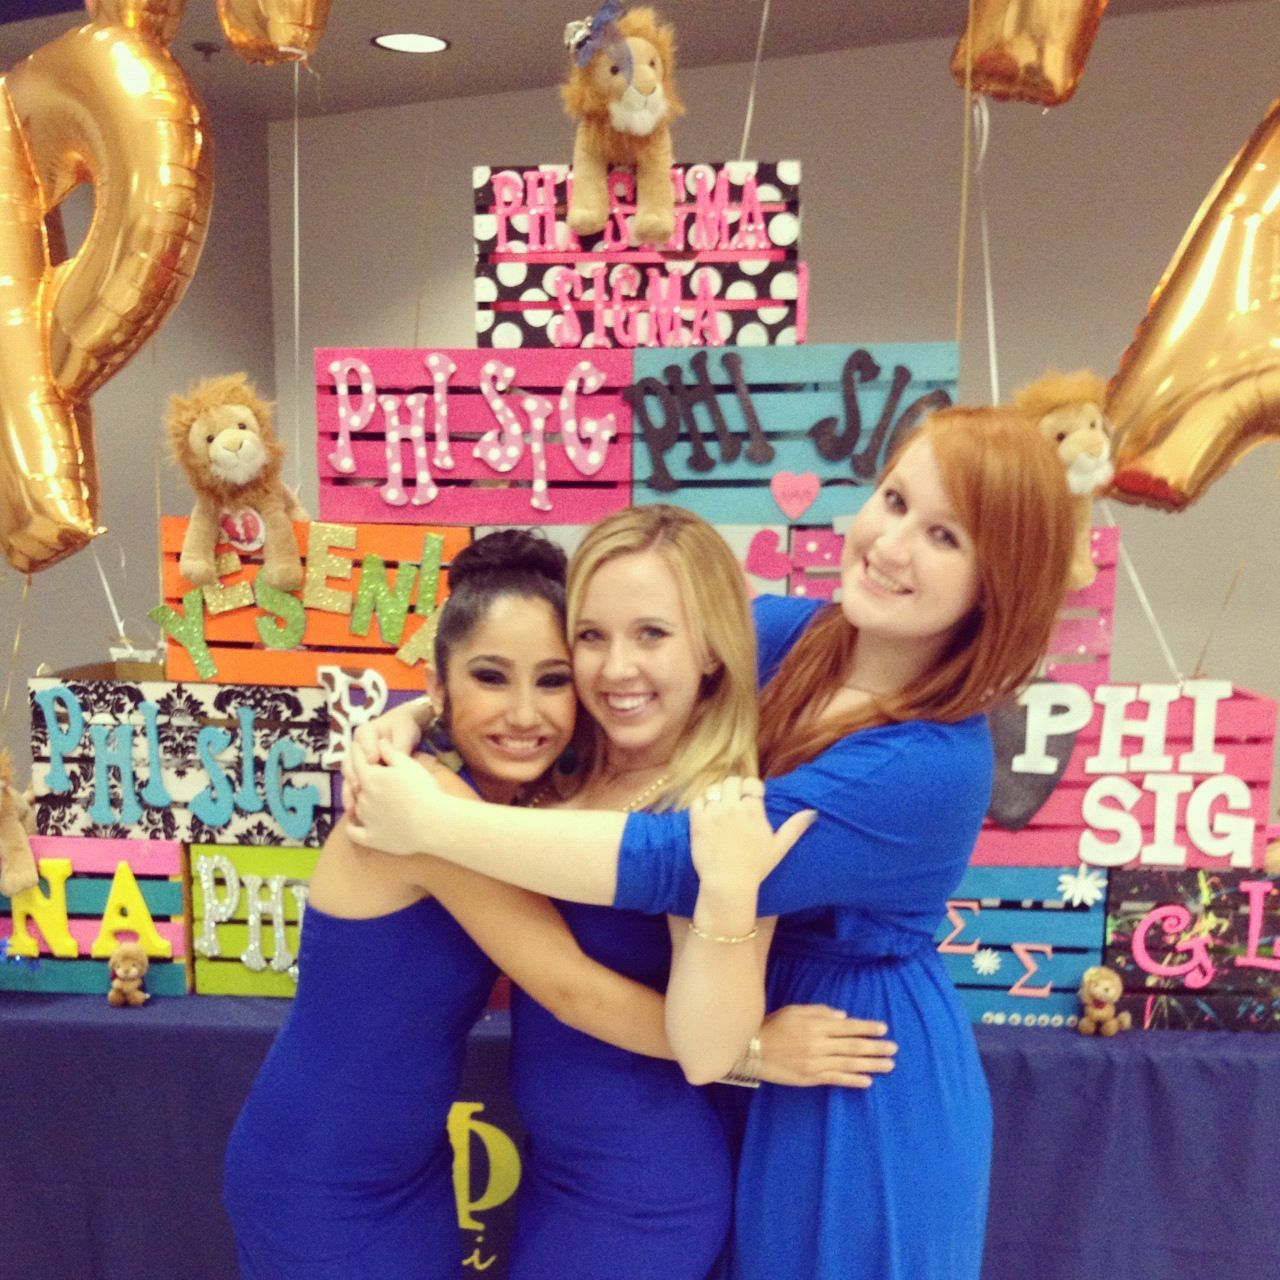 This would be super cute to do for recruitment